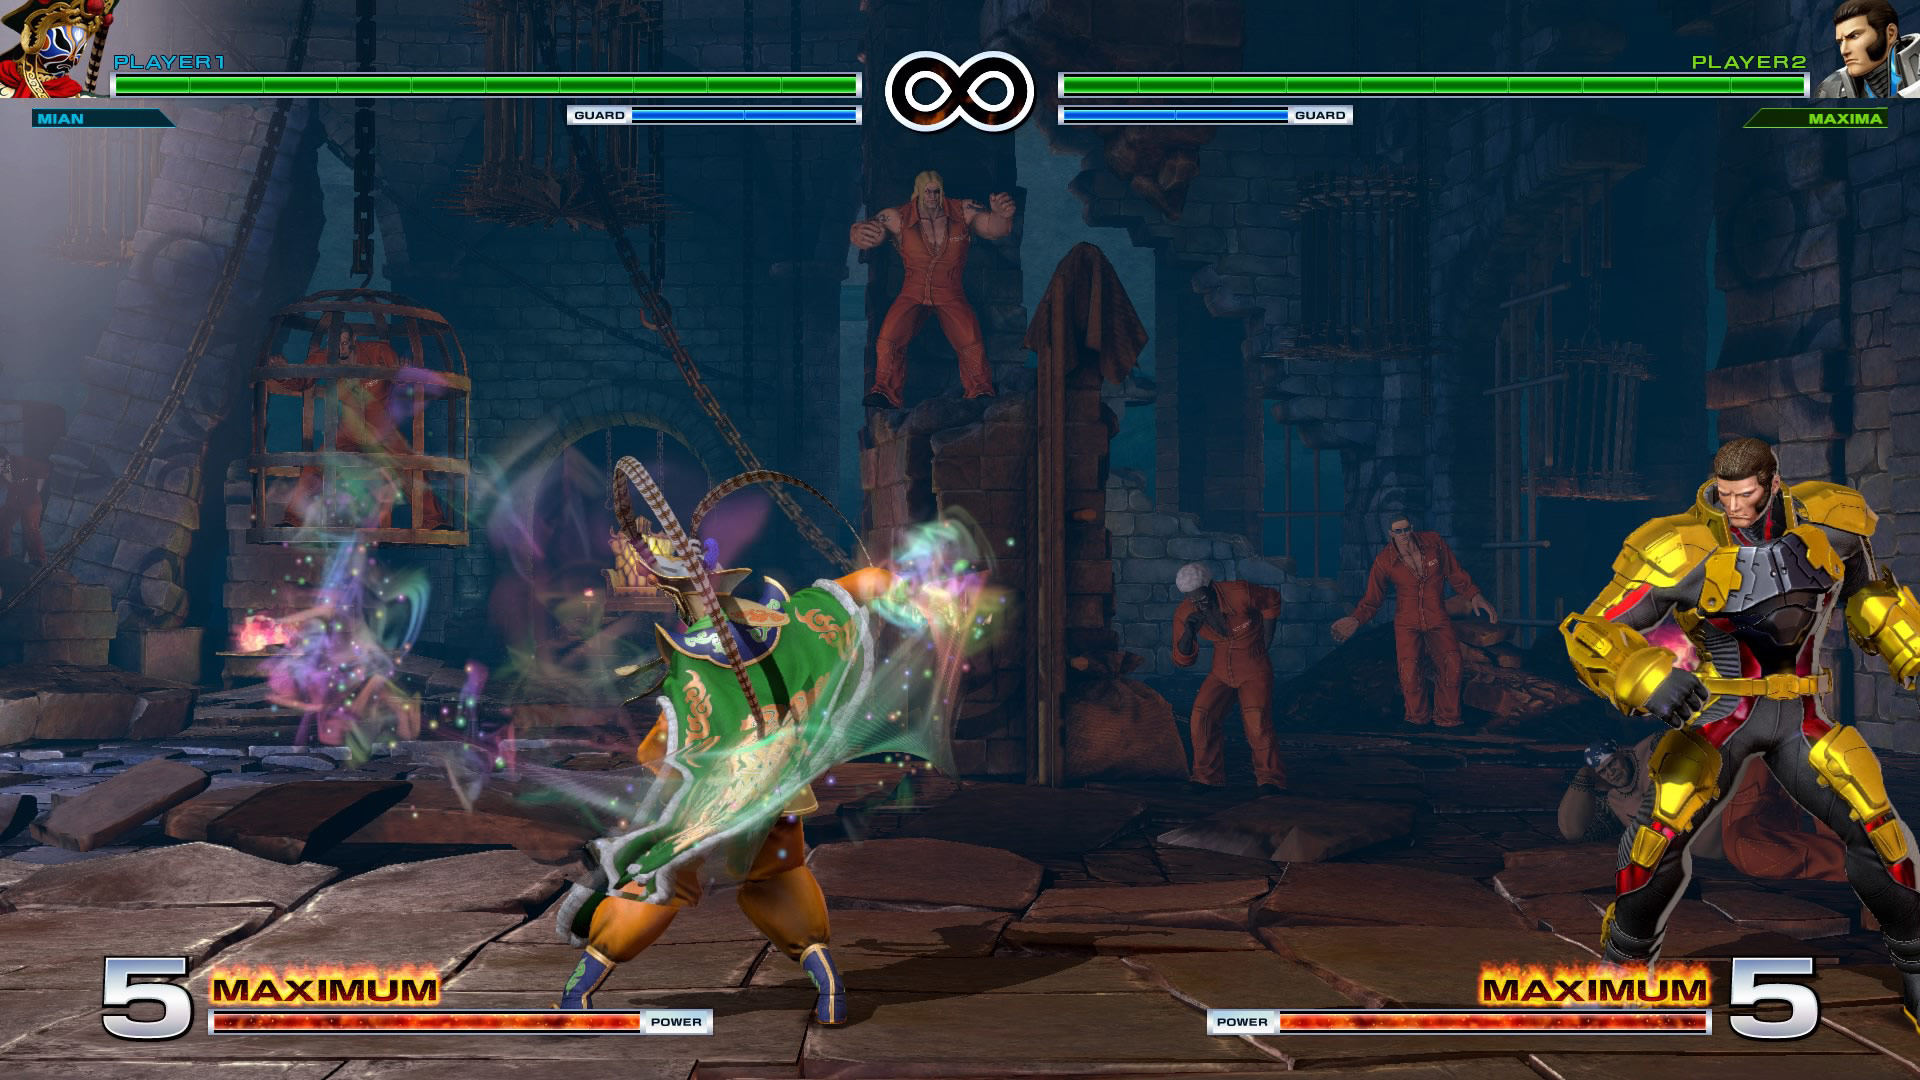 King of Fighters 14 1.10 graphics update 29 out of 60 image gallery